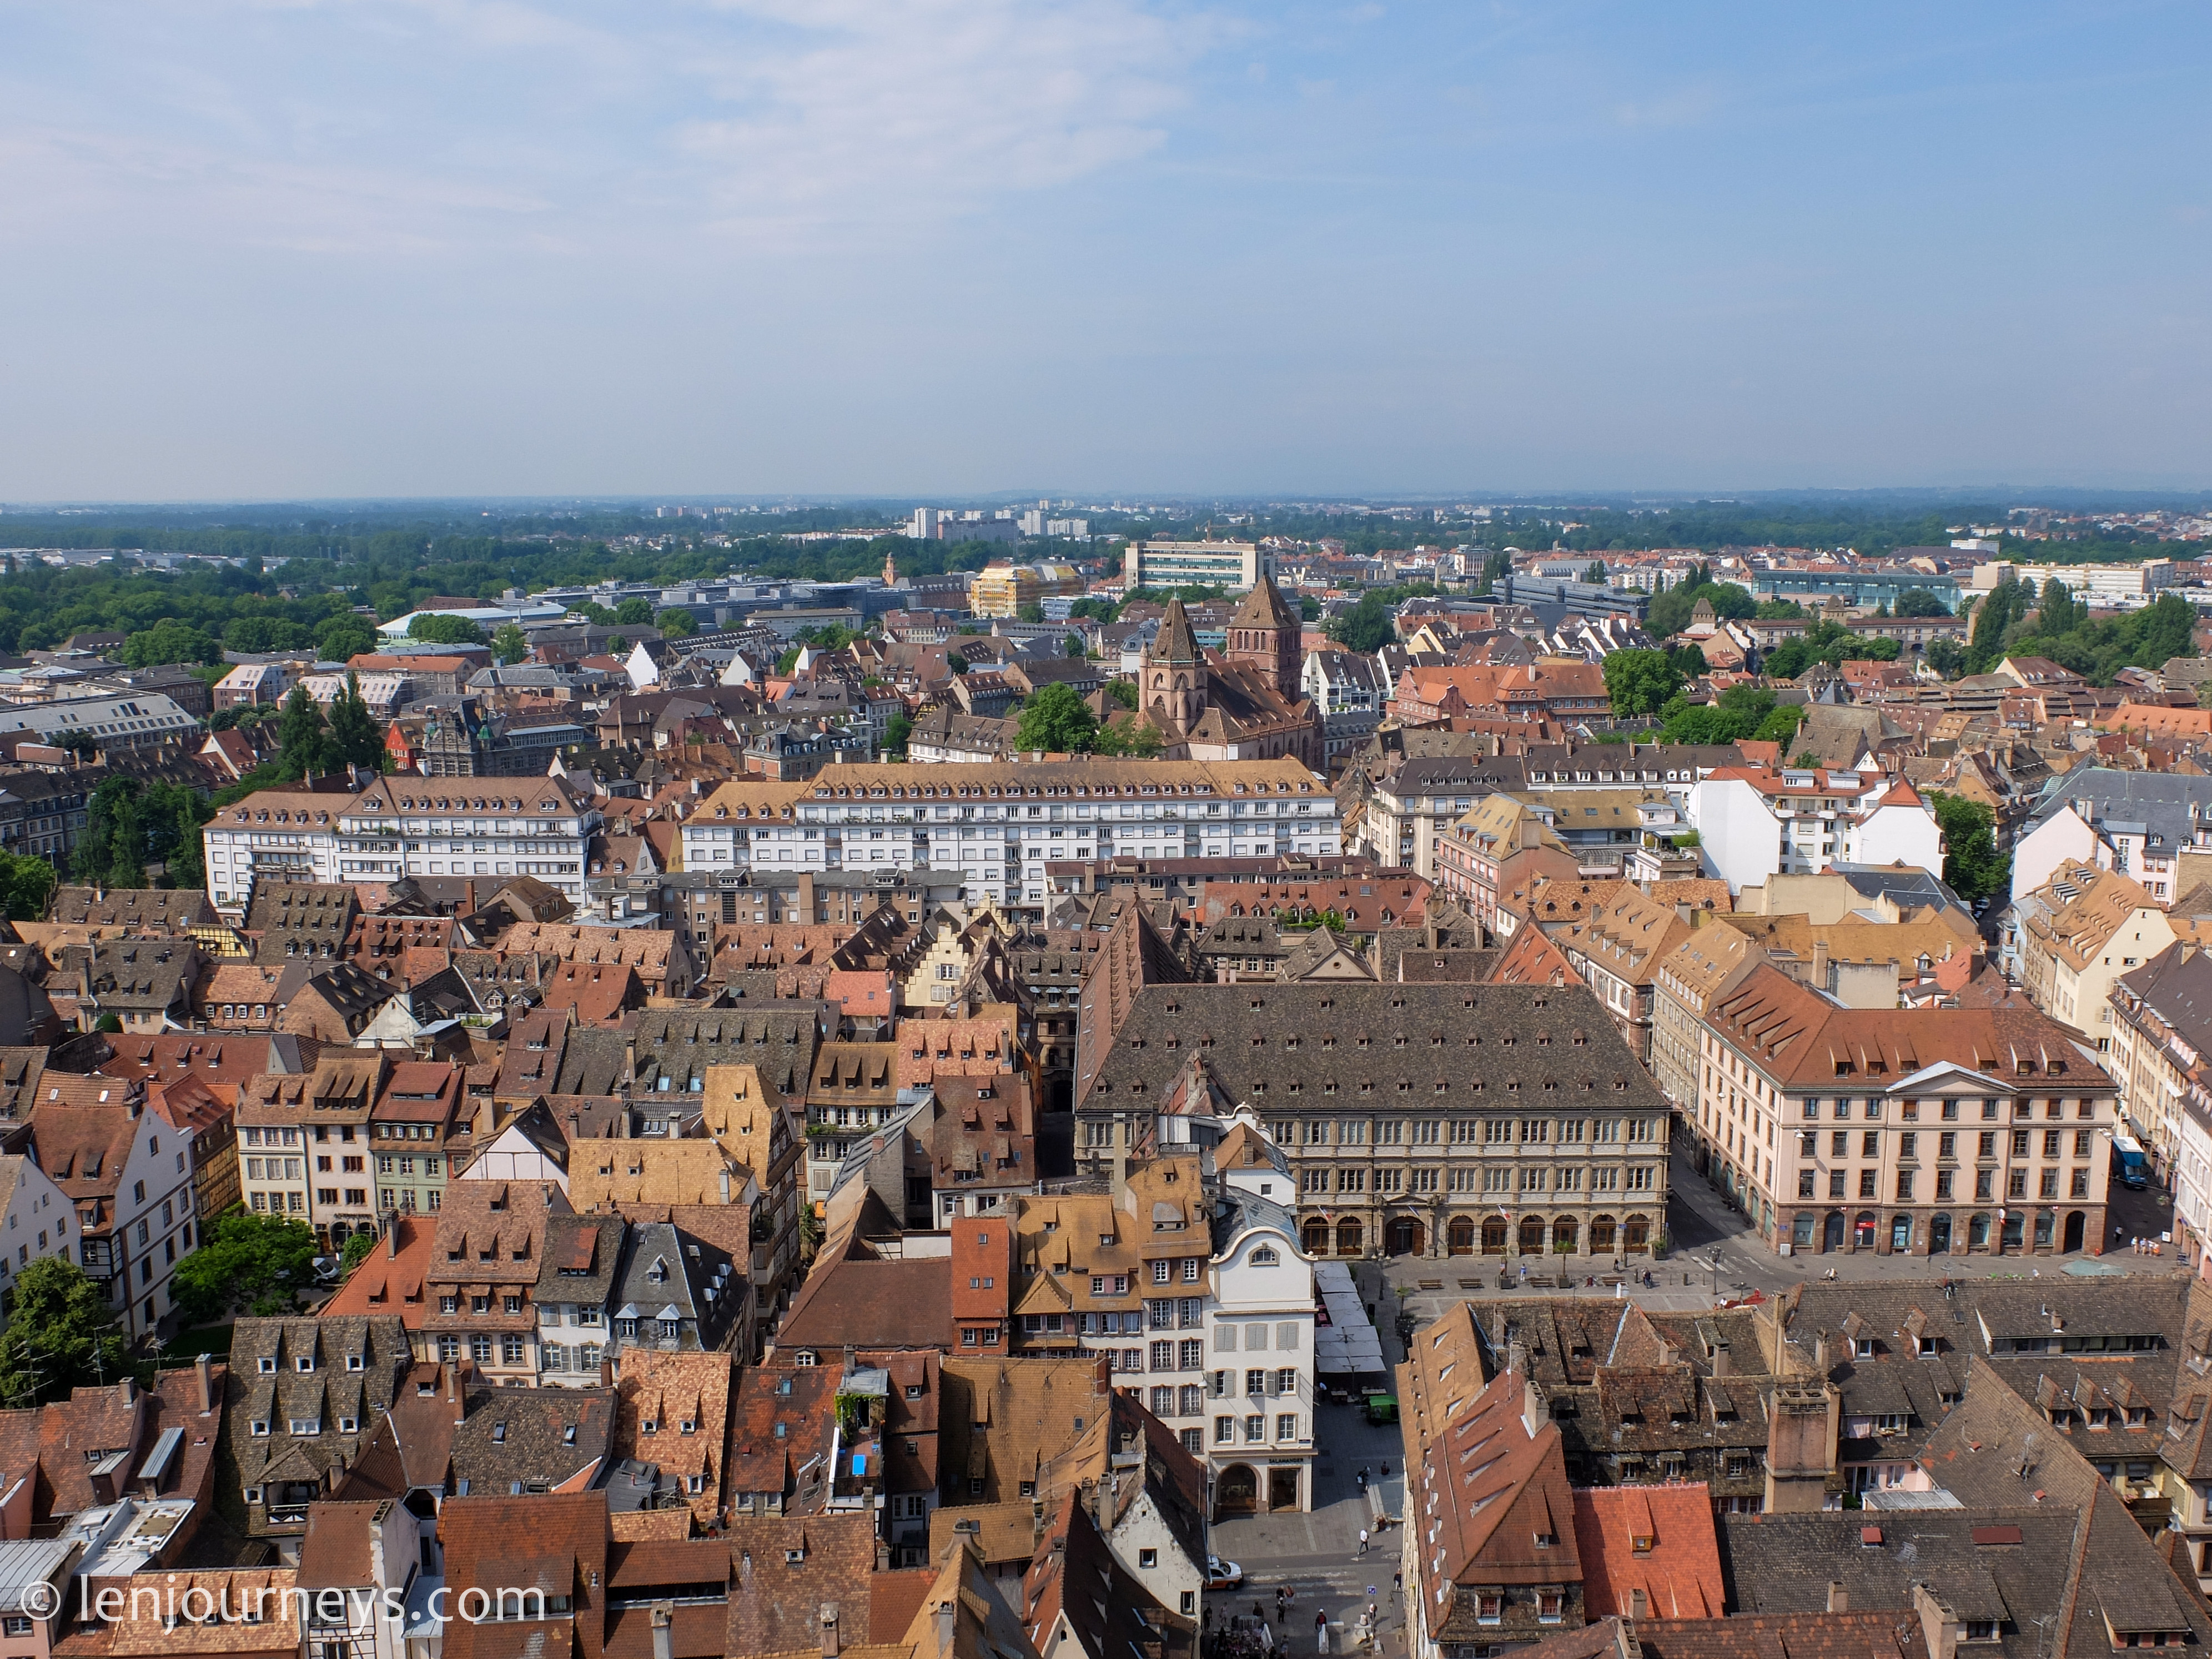 View from the top of the Cathedral